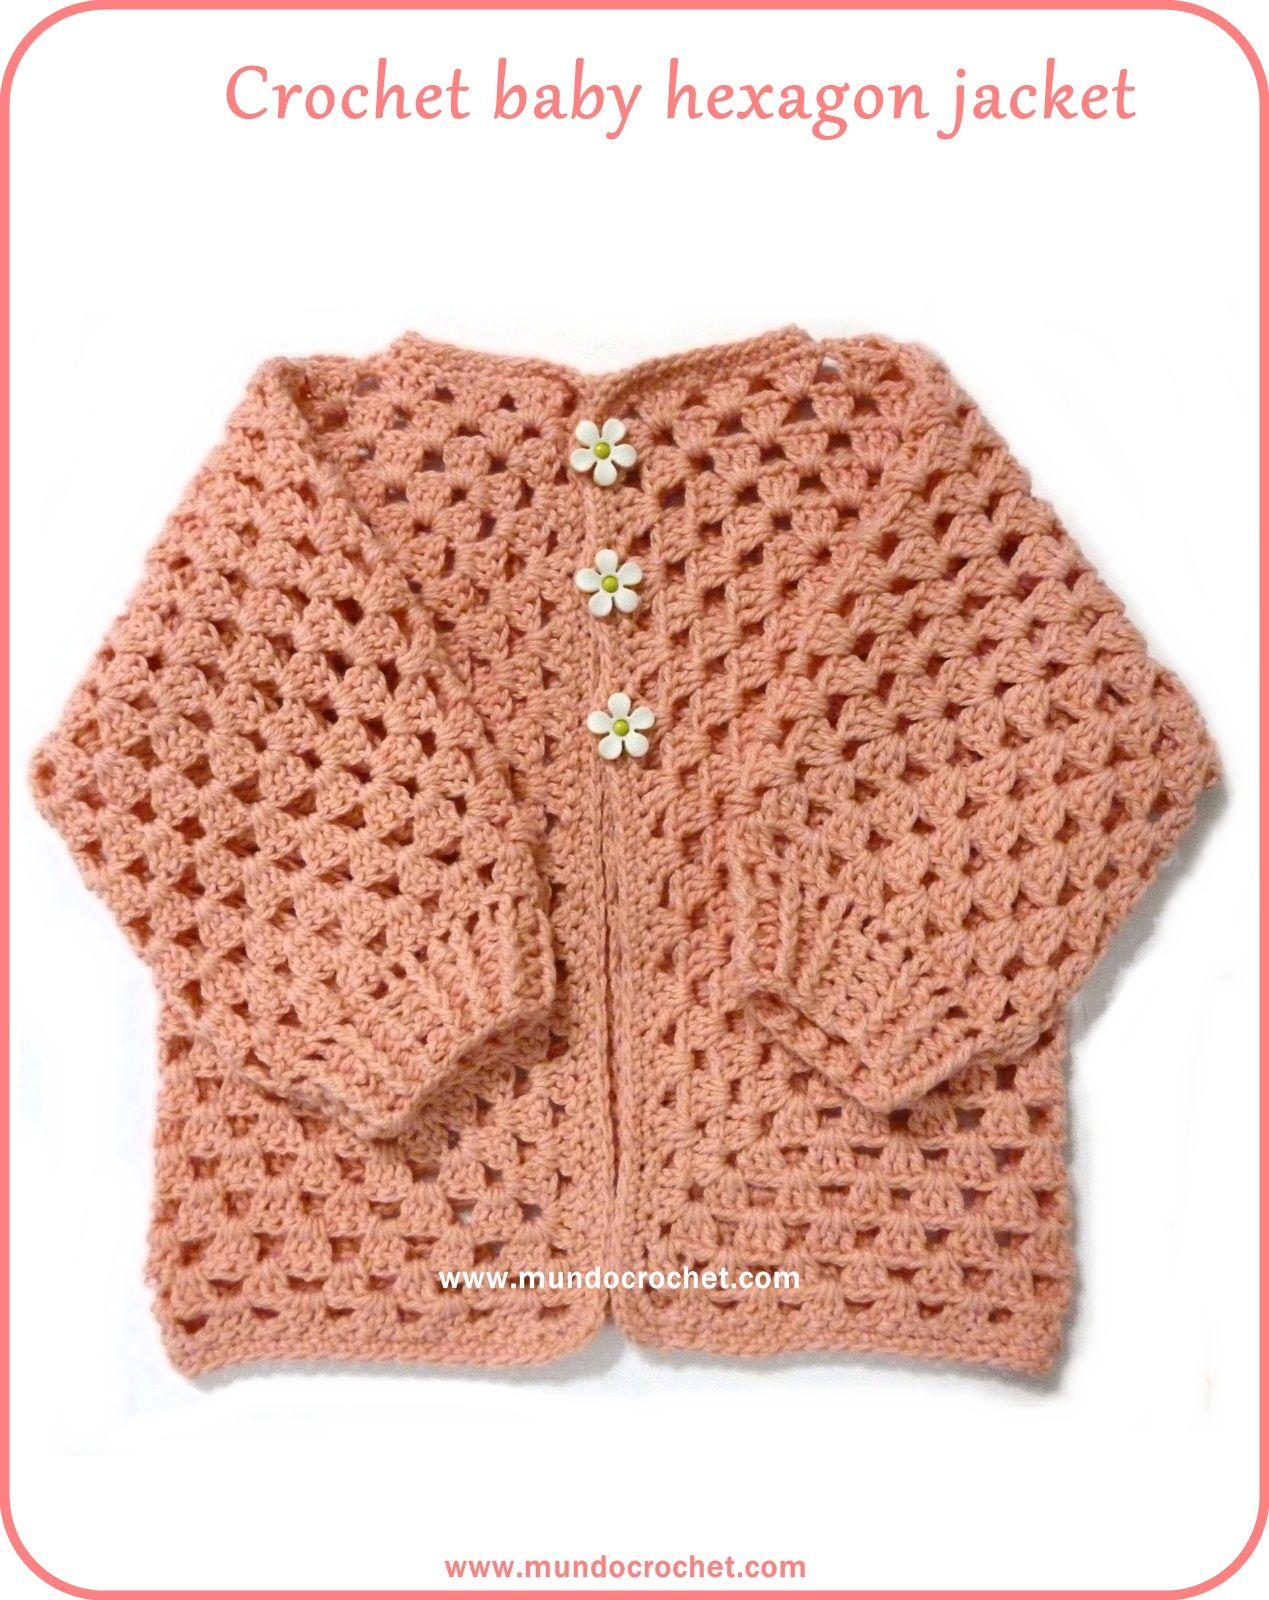 ee21d0e0ef7a Crochet baby hexagon jacket with no holes  Free pattern and Tutorial ...